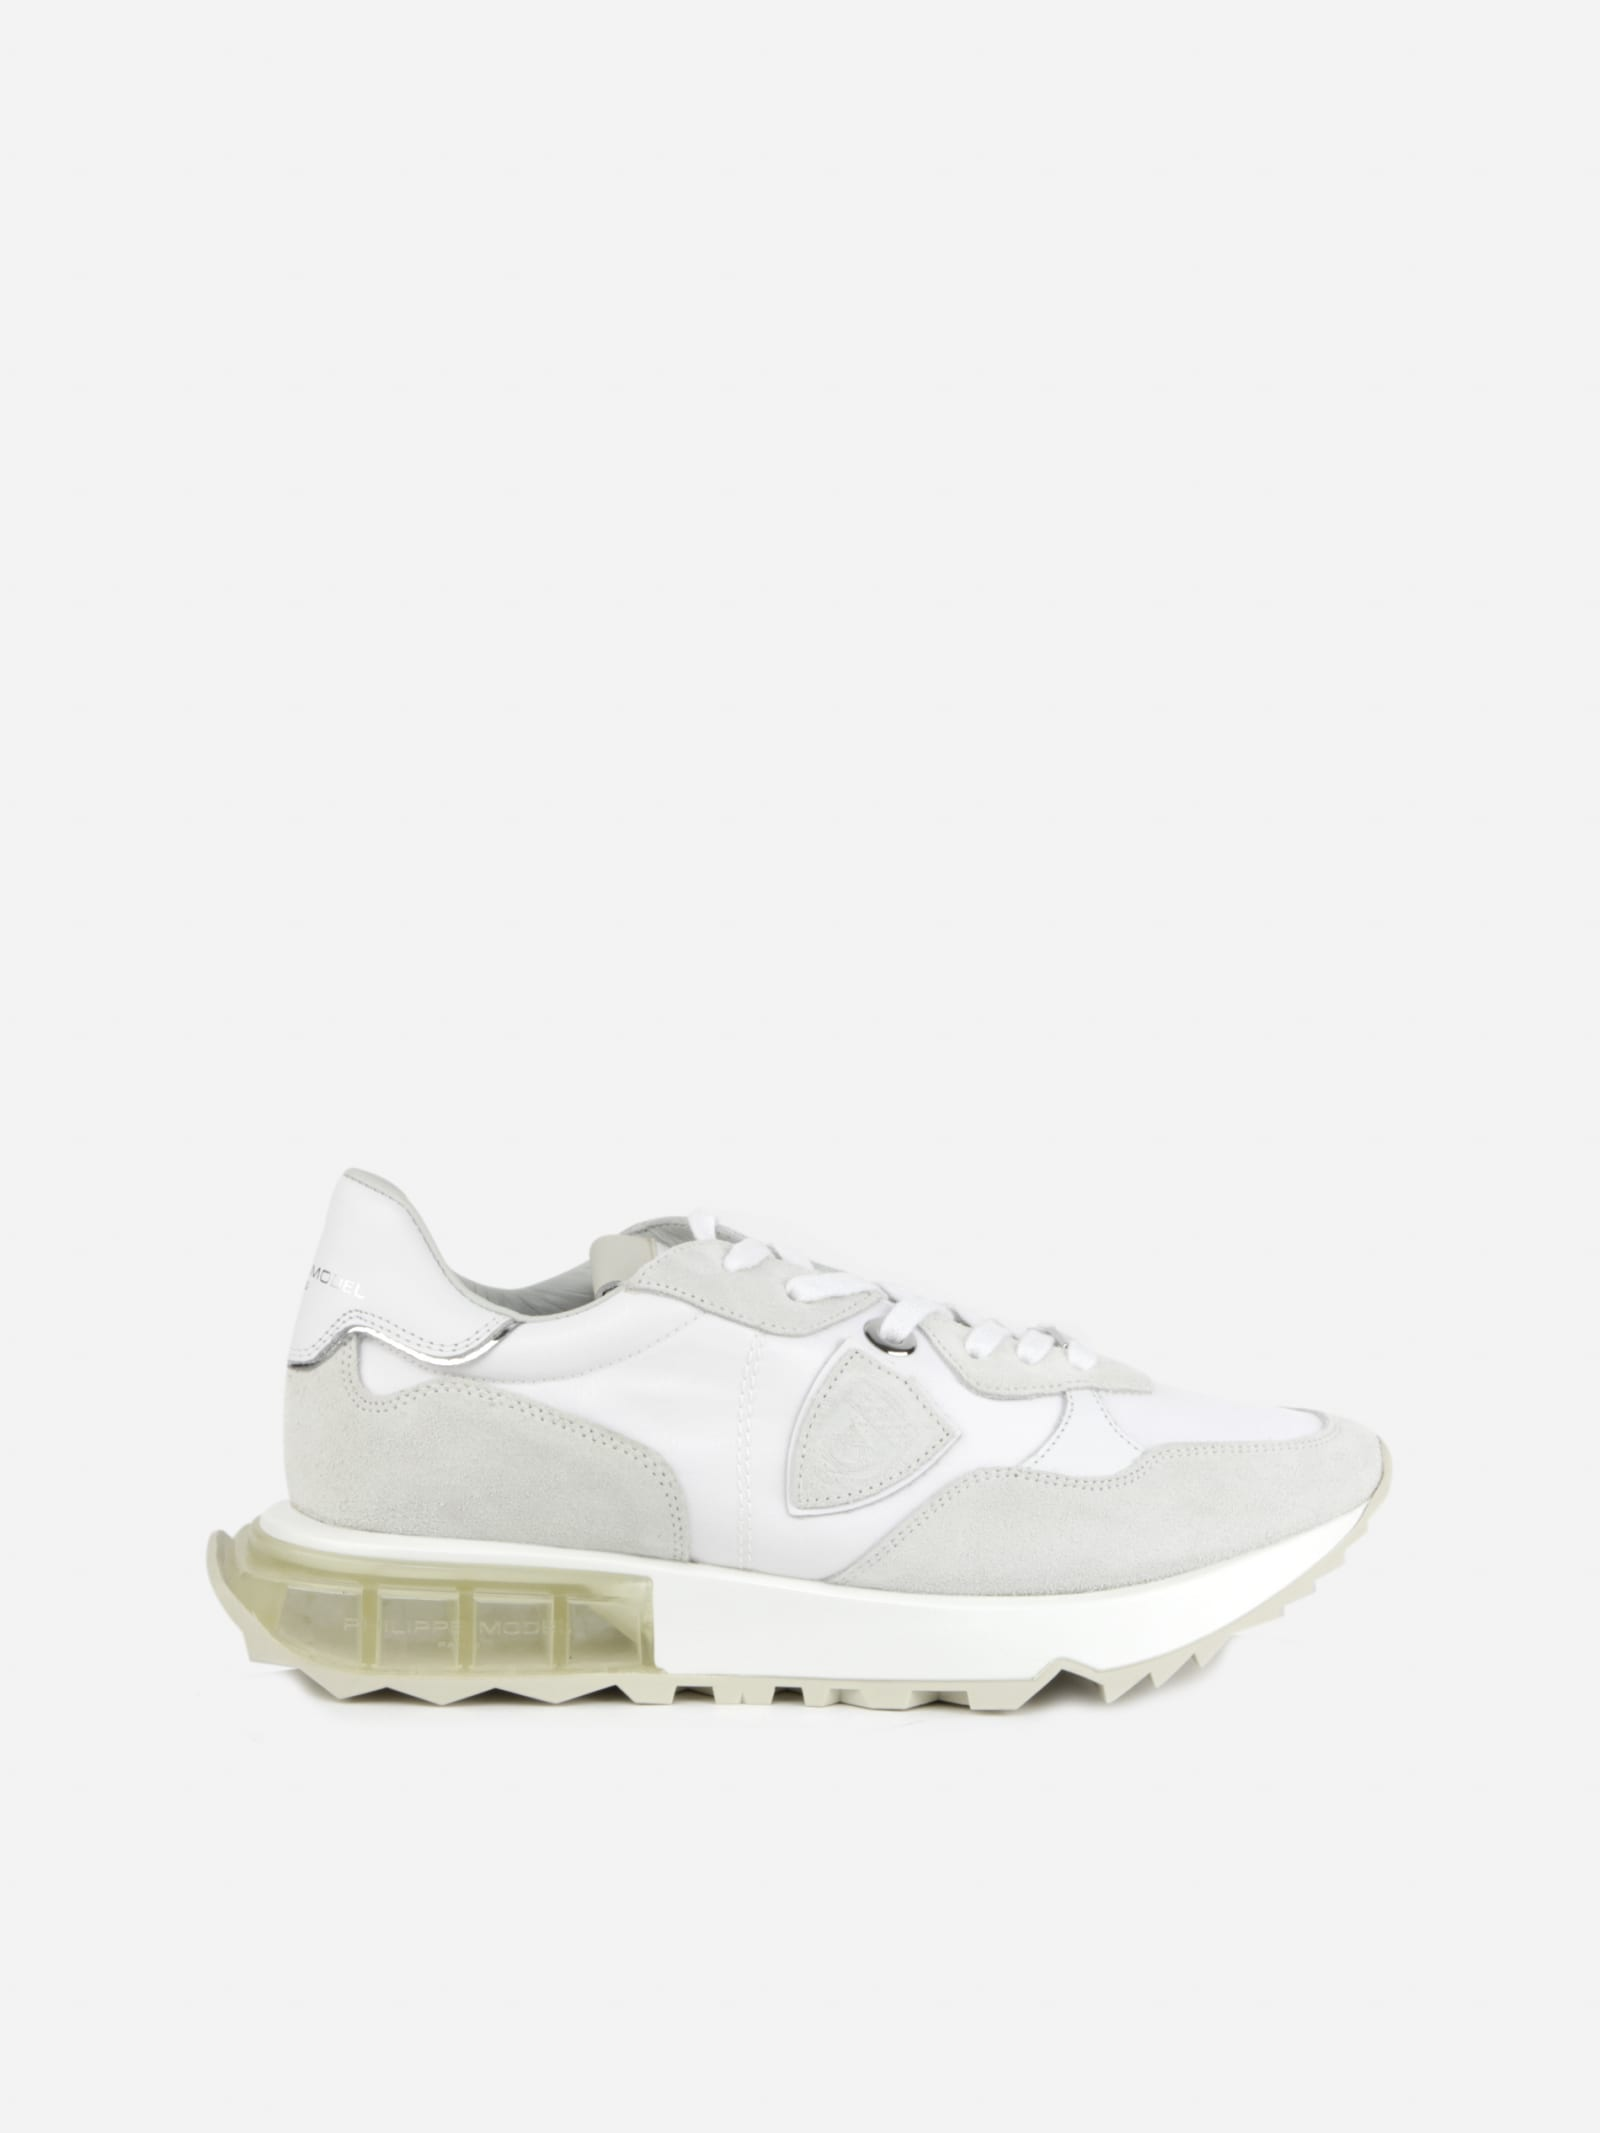 Philippe Model Sports LA RUE MONDIAL SNEAKERS IN LEATHER AND SUEDE